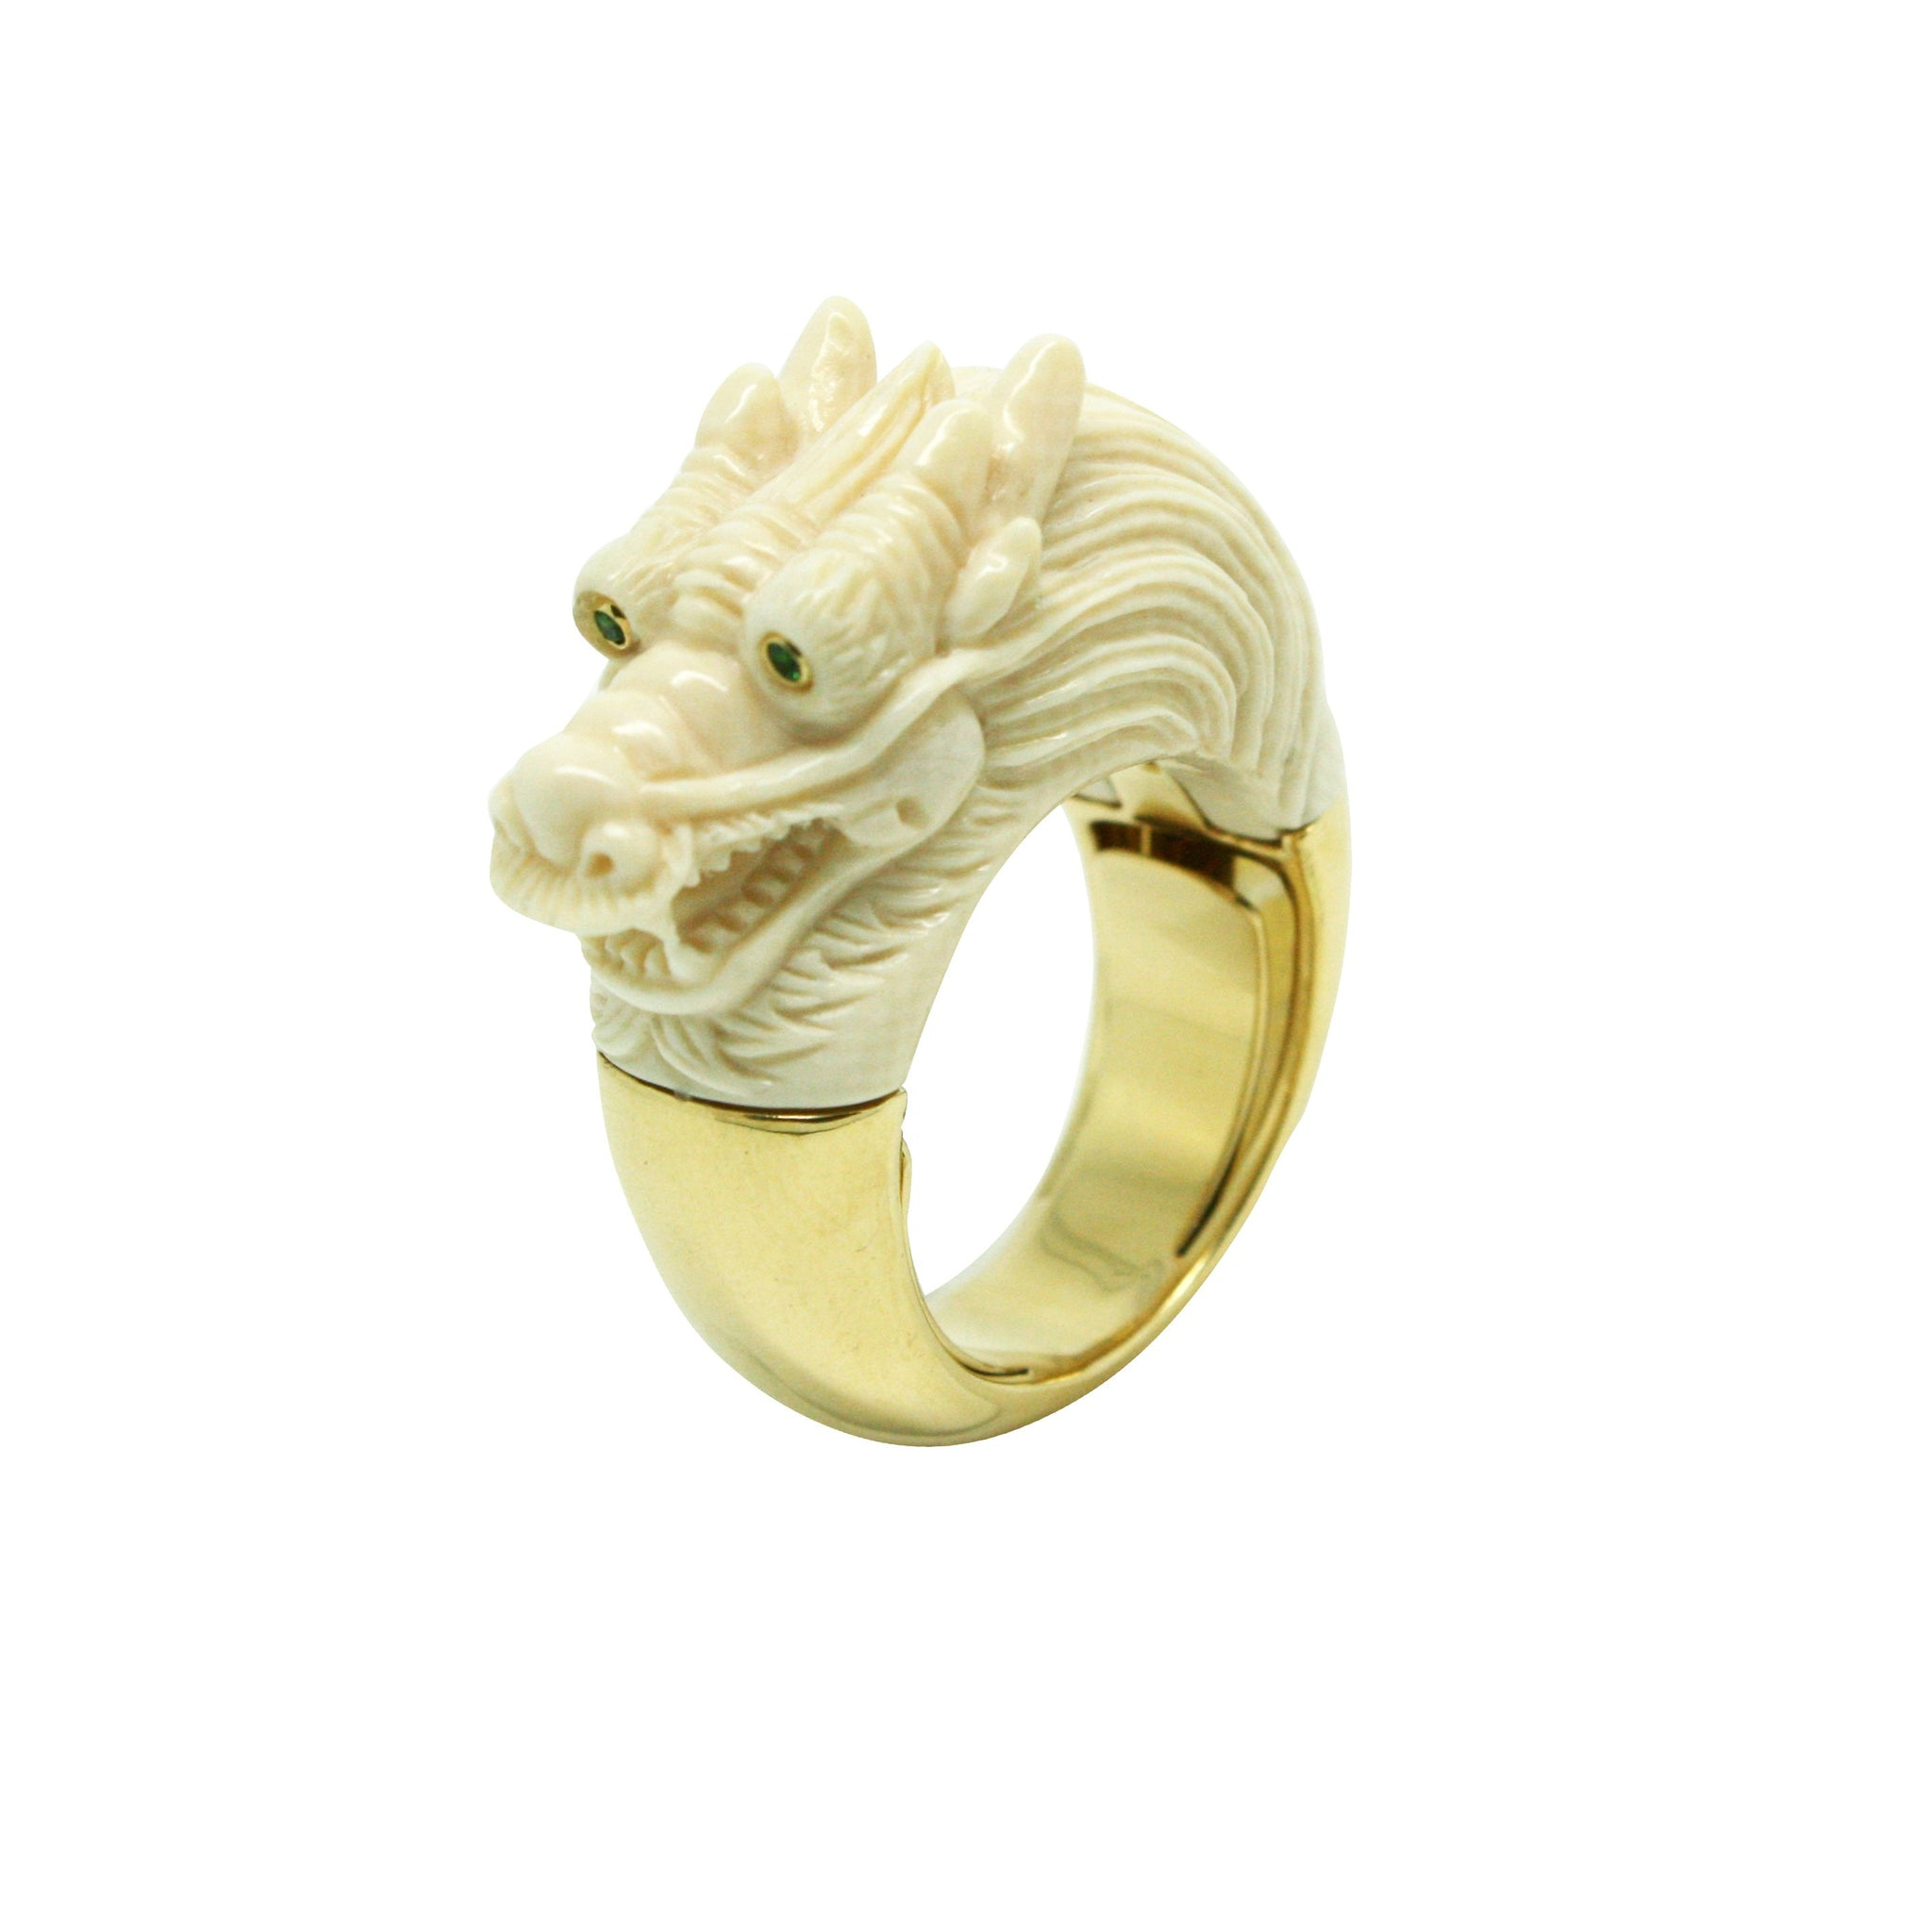 Mammoth Dragon Ring